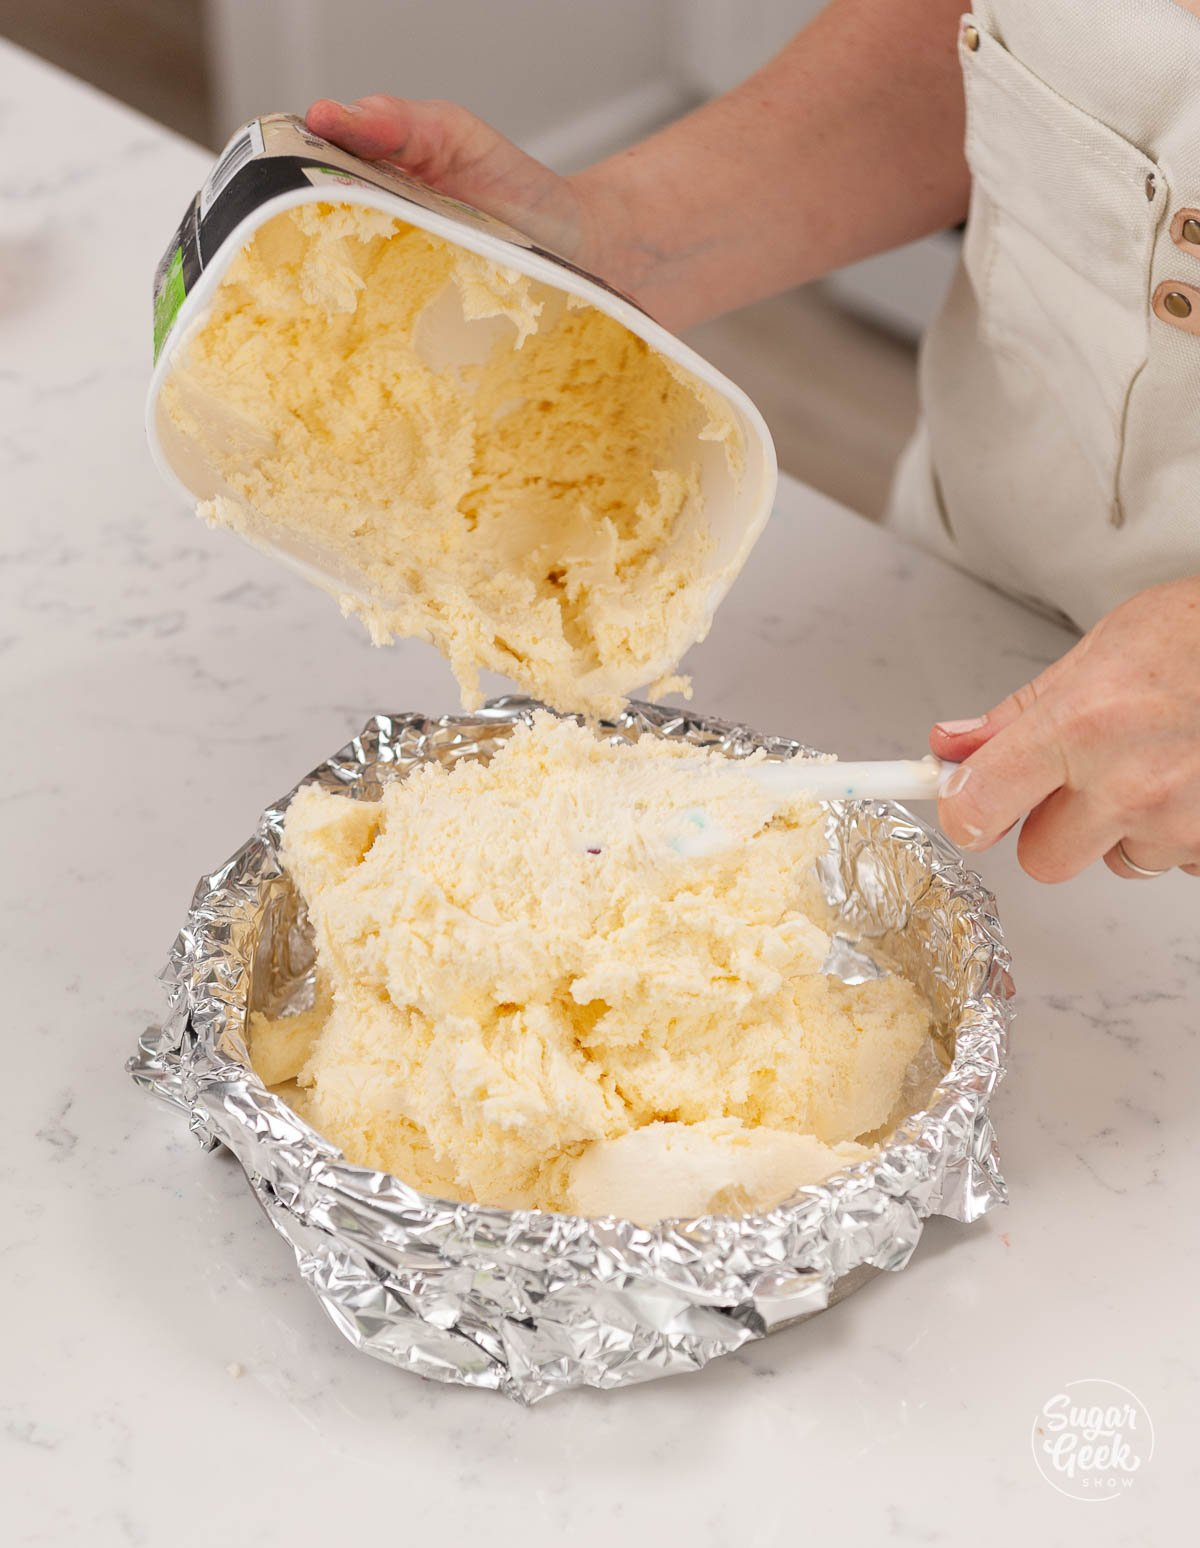 placing softened ice cream into an aluminum foil lined cake pan